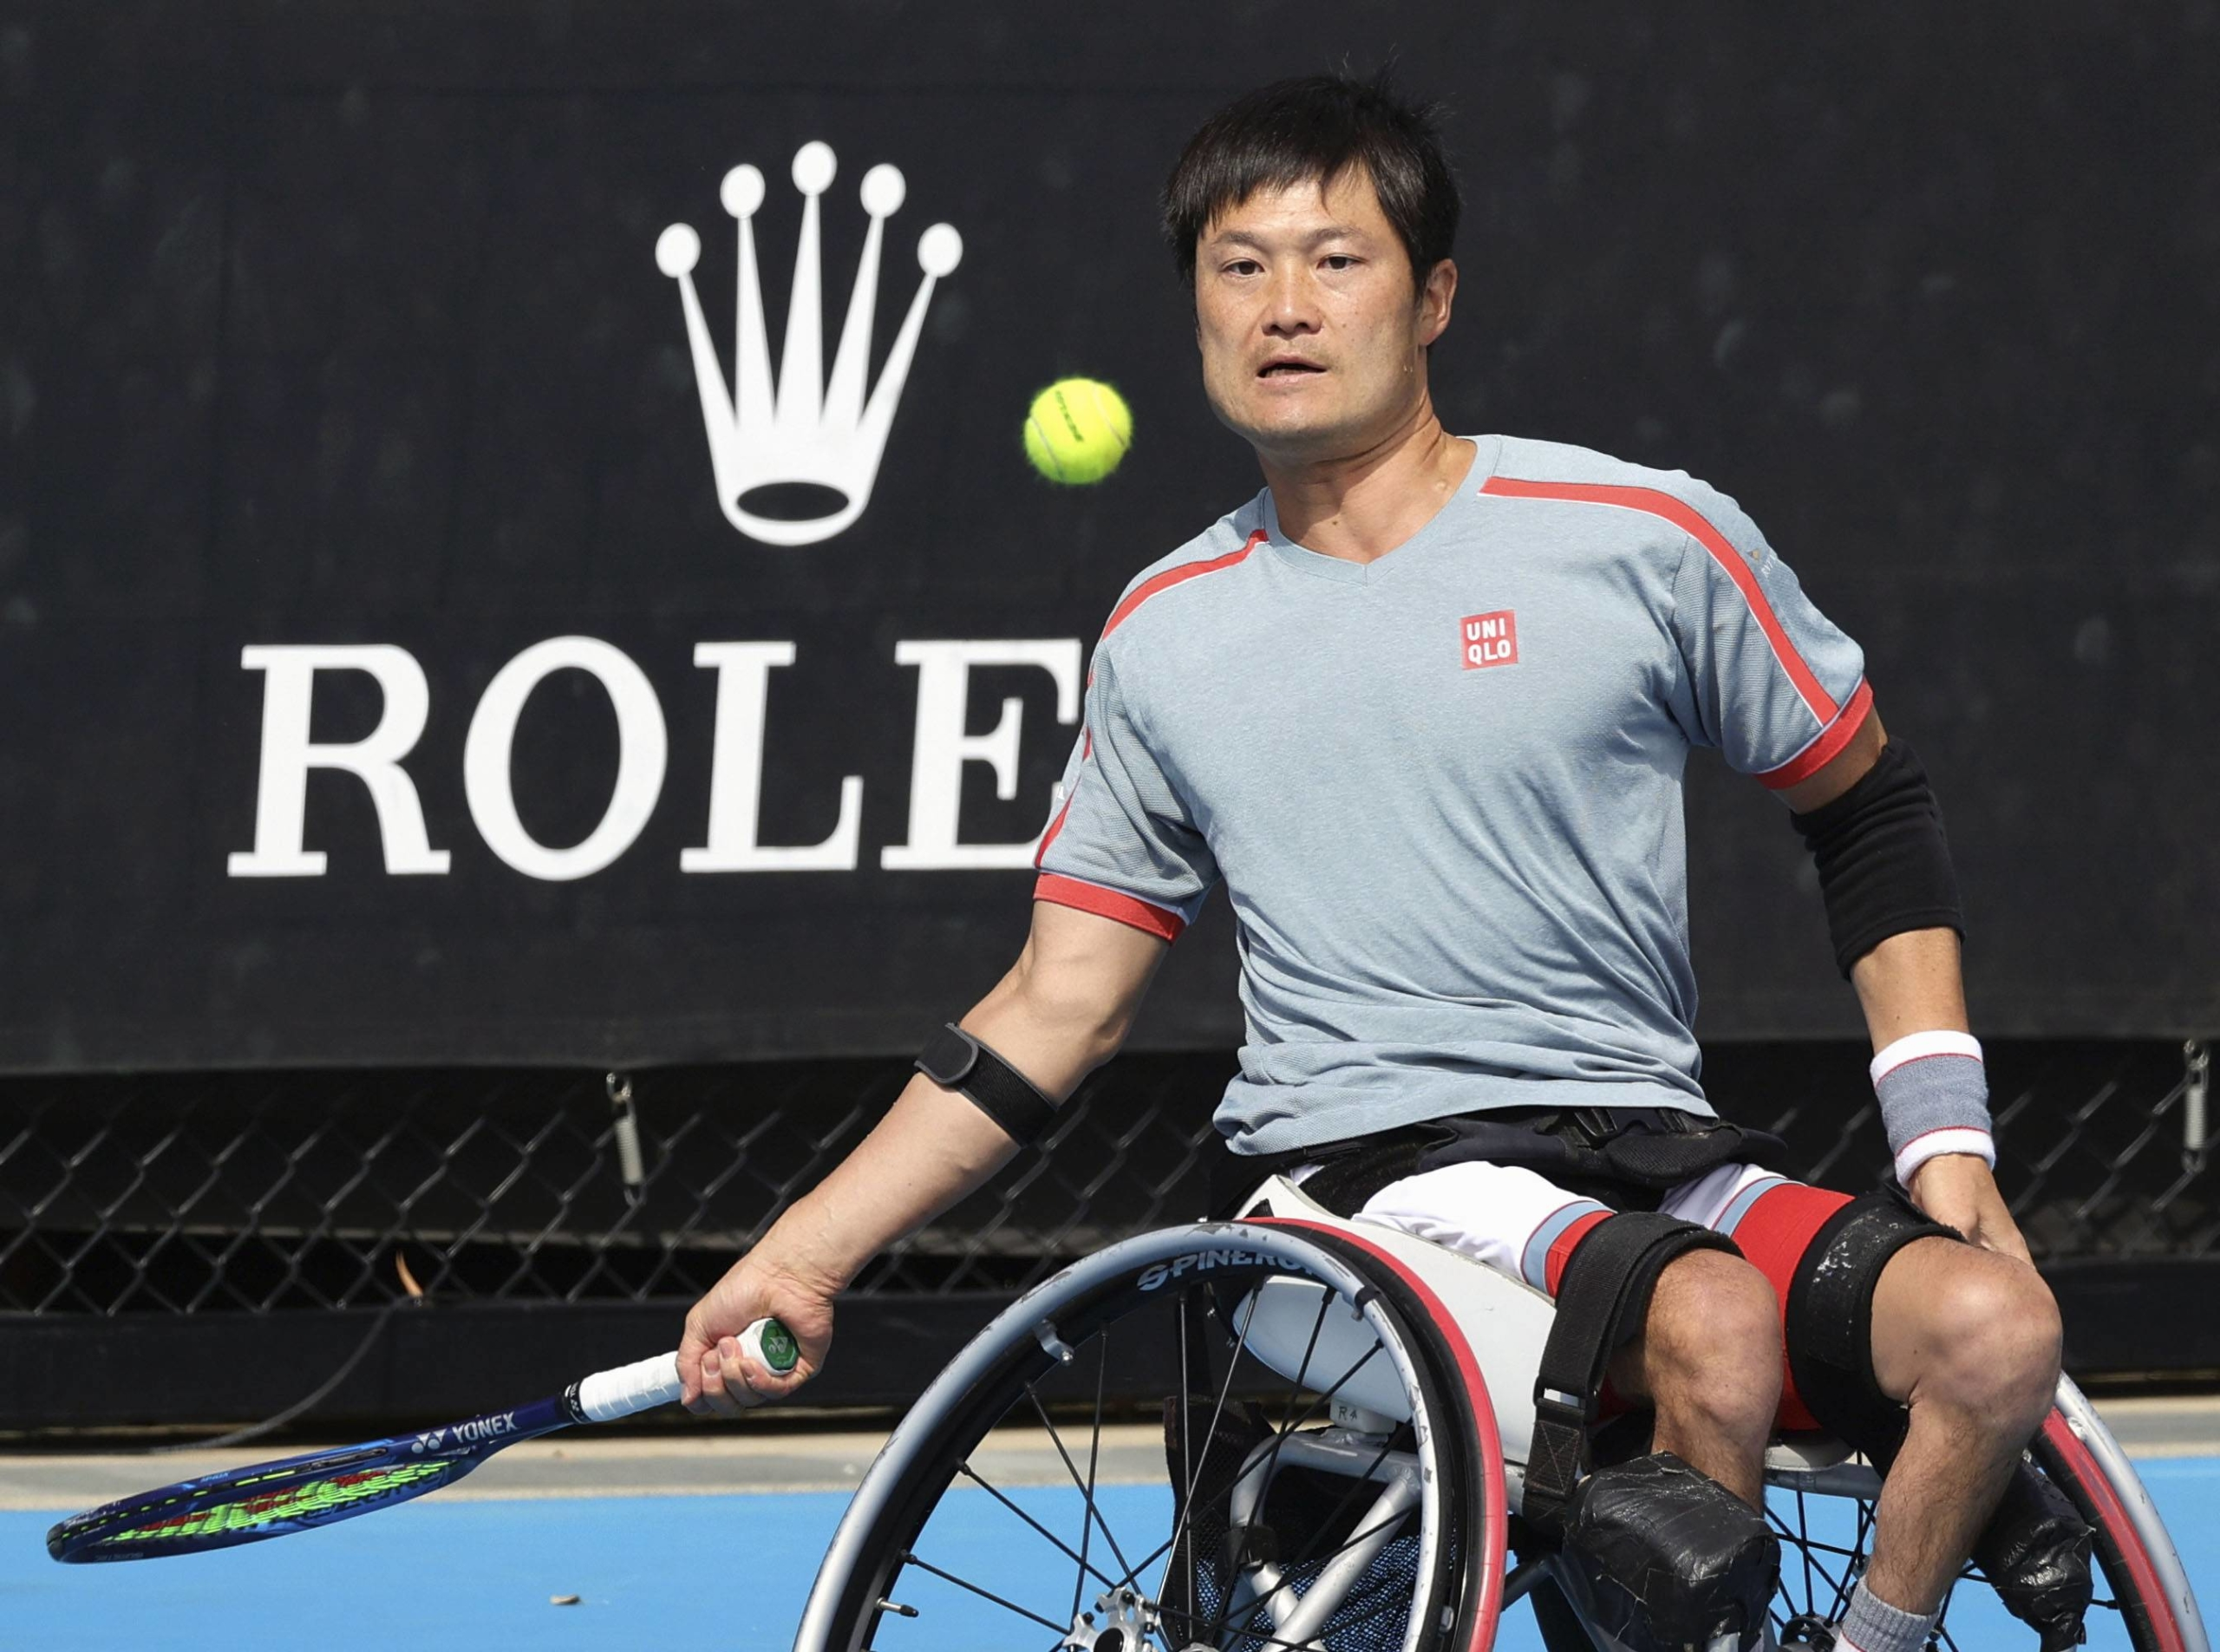 Shingo Kunieda hits a shot against Alfie Hewitt during the Australian Open semifinals in Melbourne on Monday. | KYODO